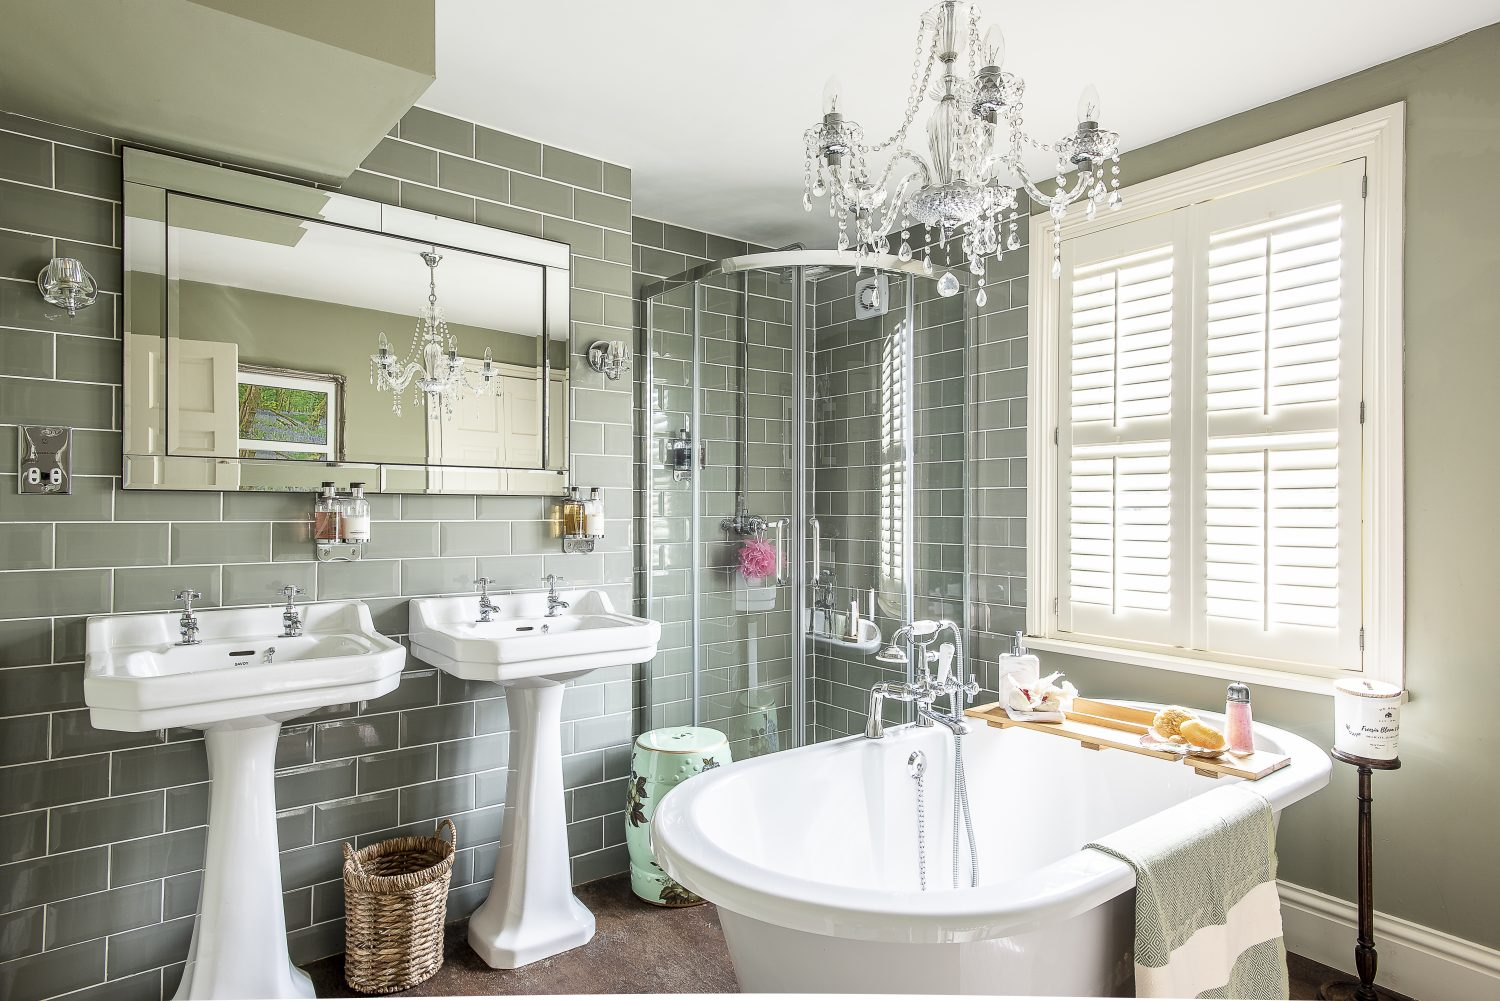 The bathroom, previously a bedroom, is now a sleek and luxurious space with pale, olive green tiles and gleaming sanitaryware